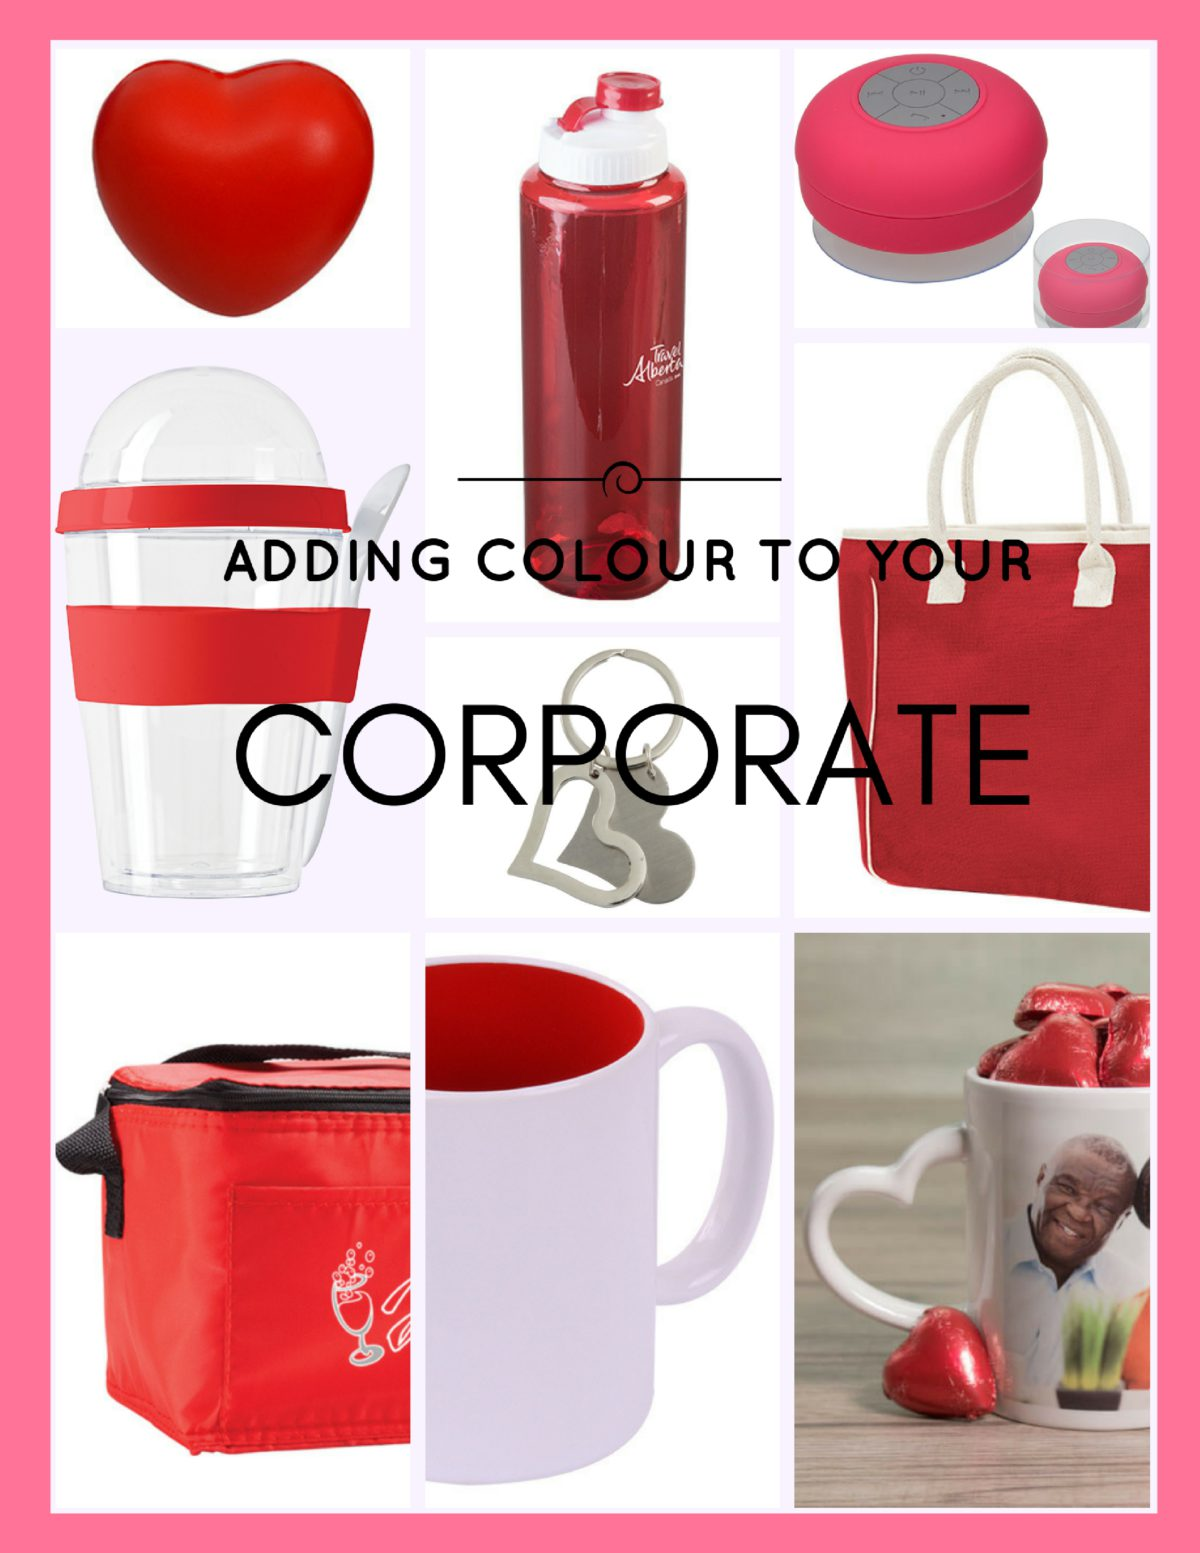 Johannesburg Corporate Valentine's Gifts 2017 | Gray House Promotions